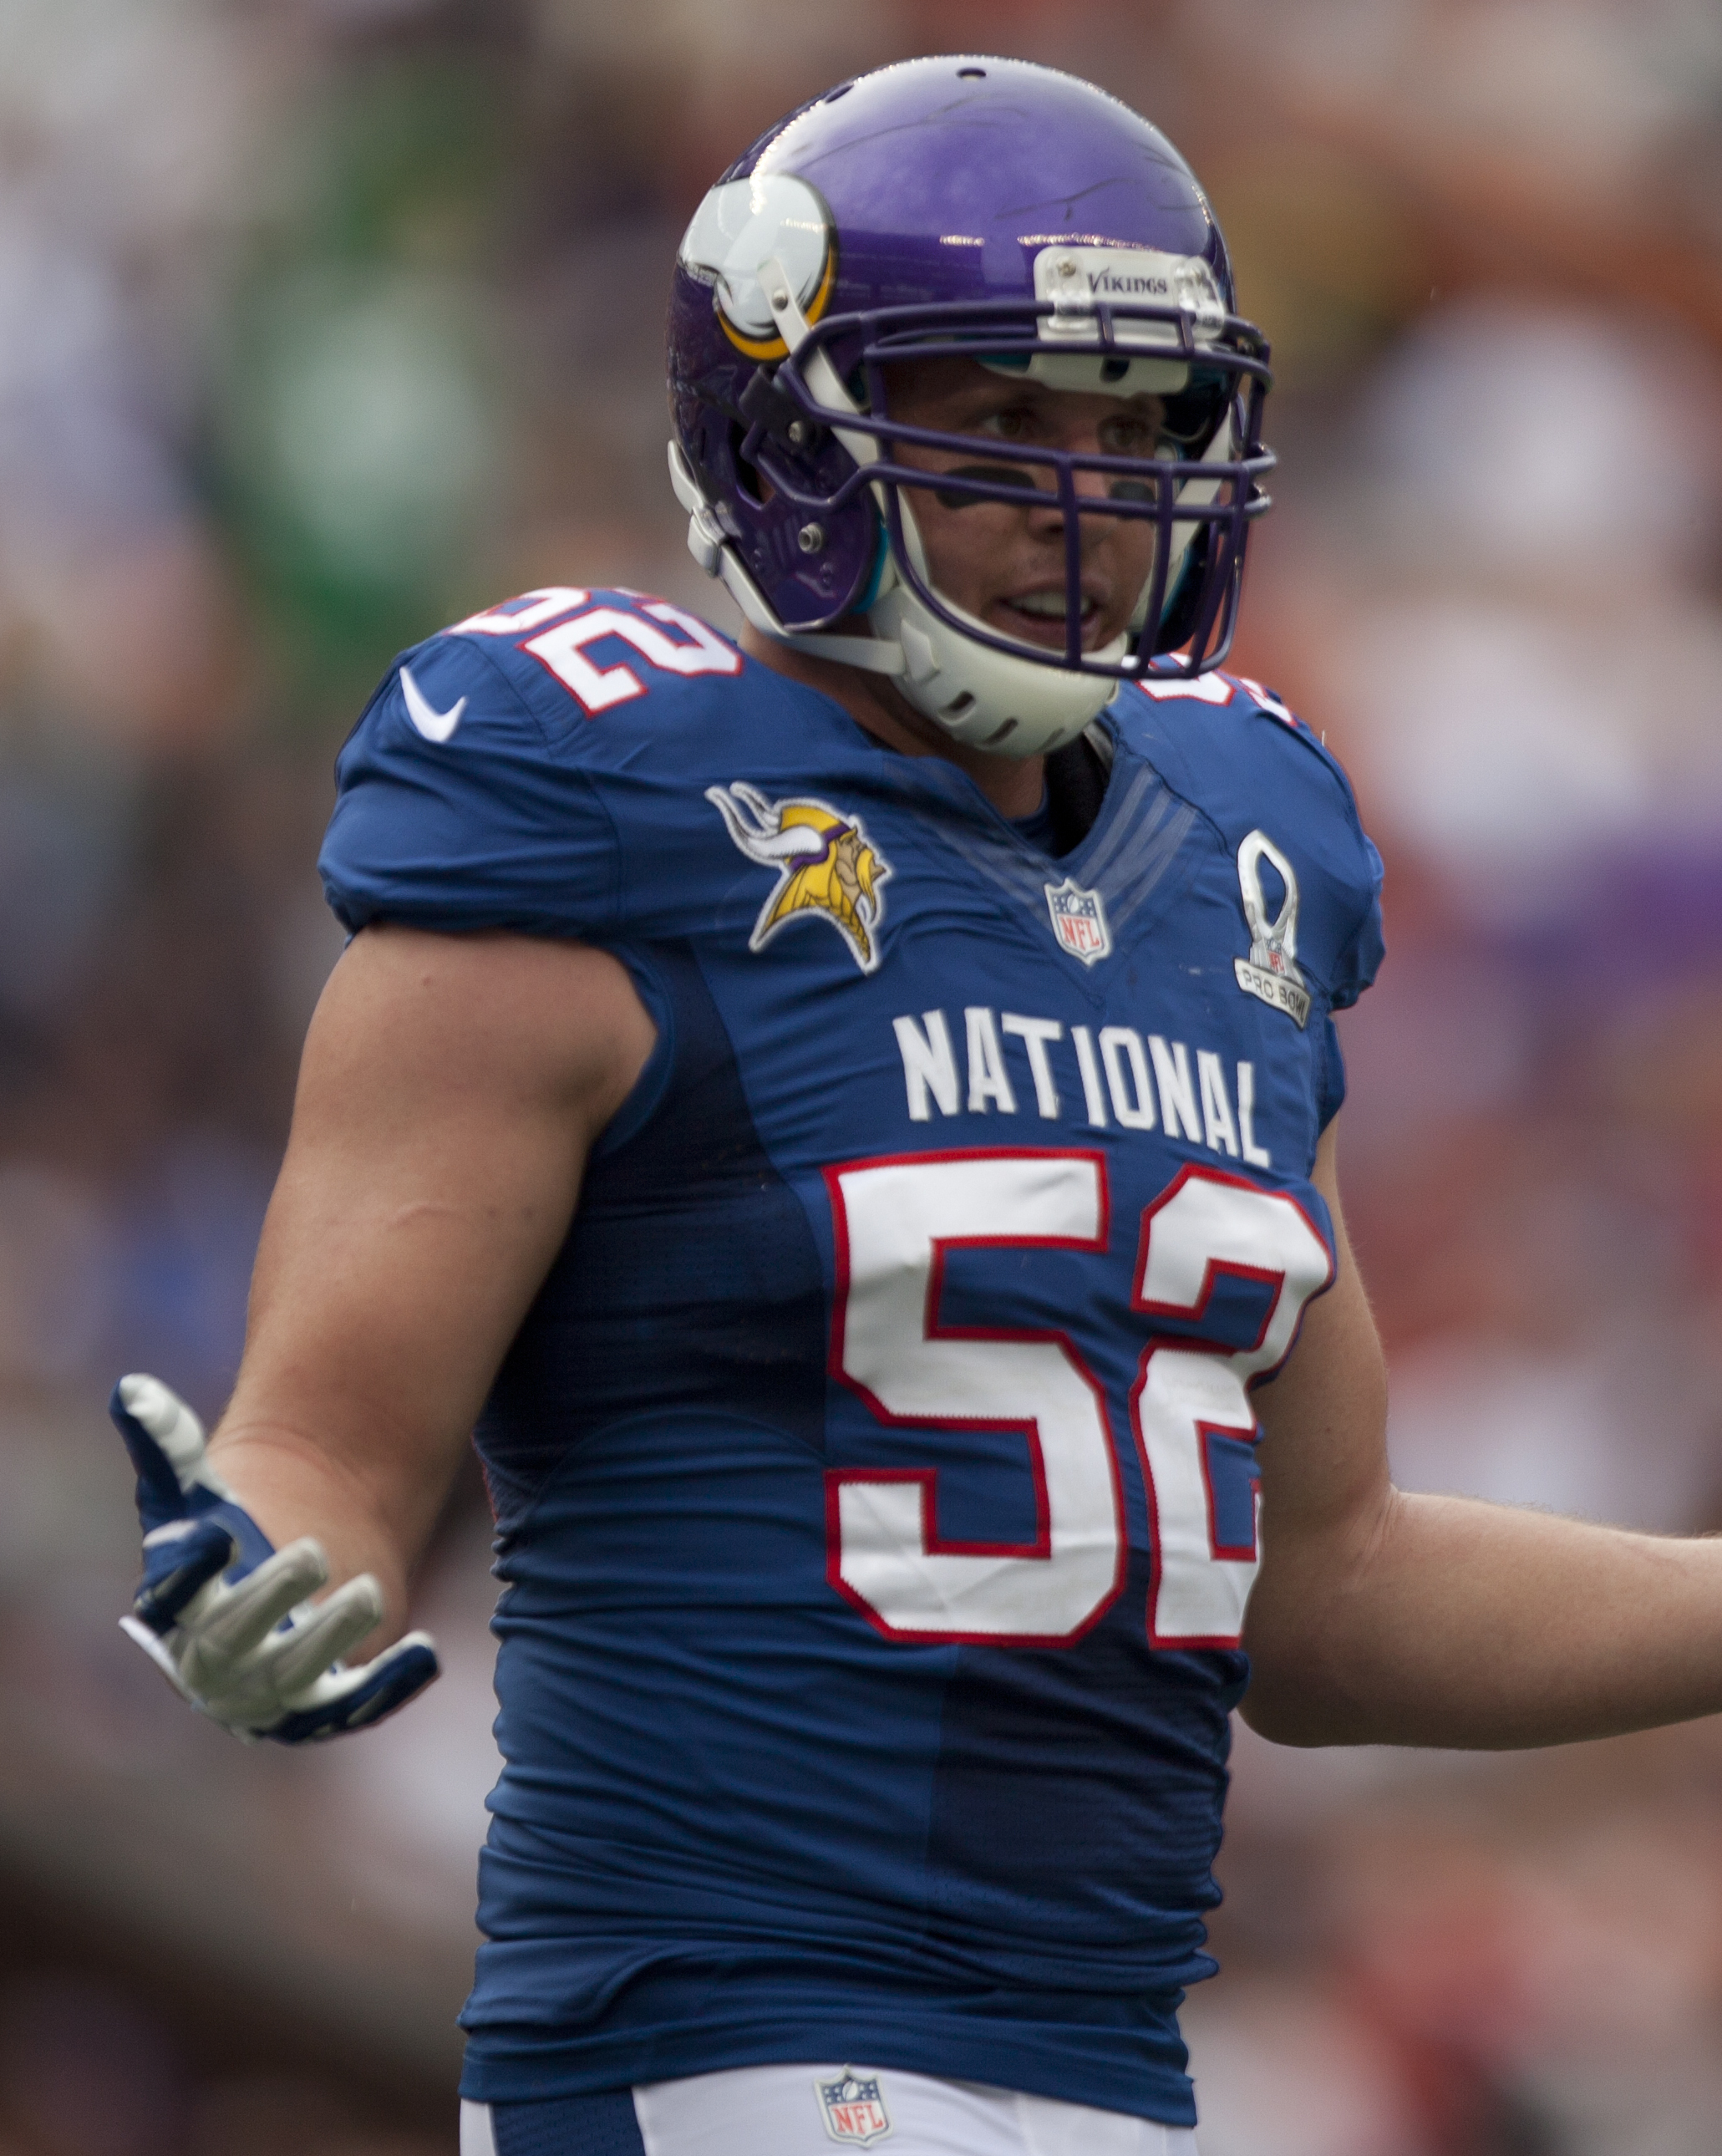 famous nfl players that used steroids